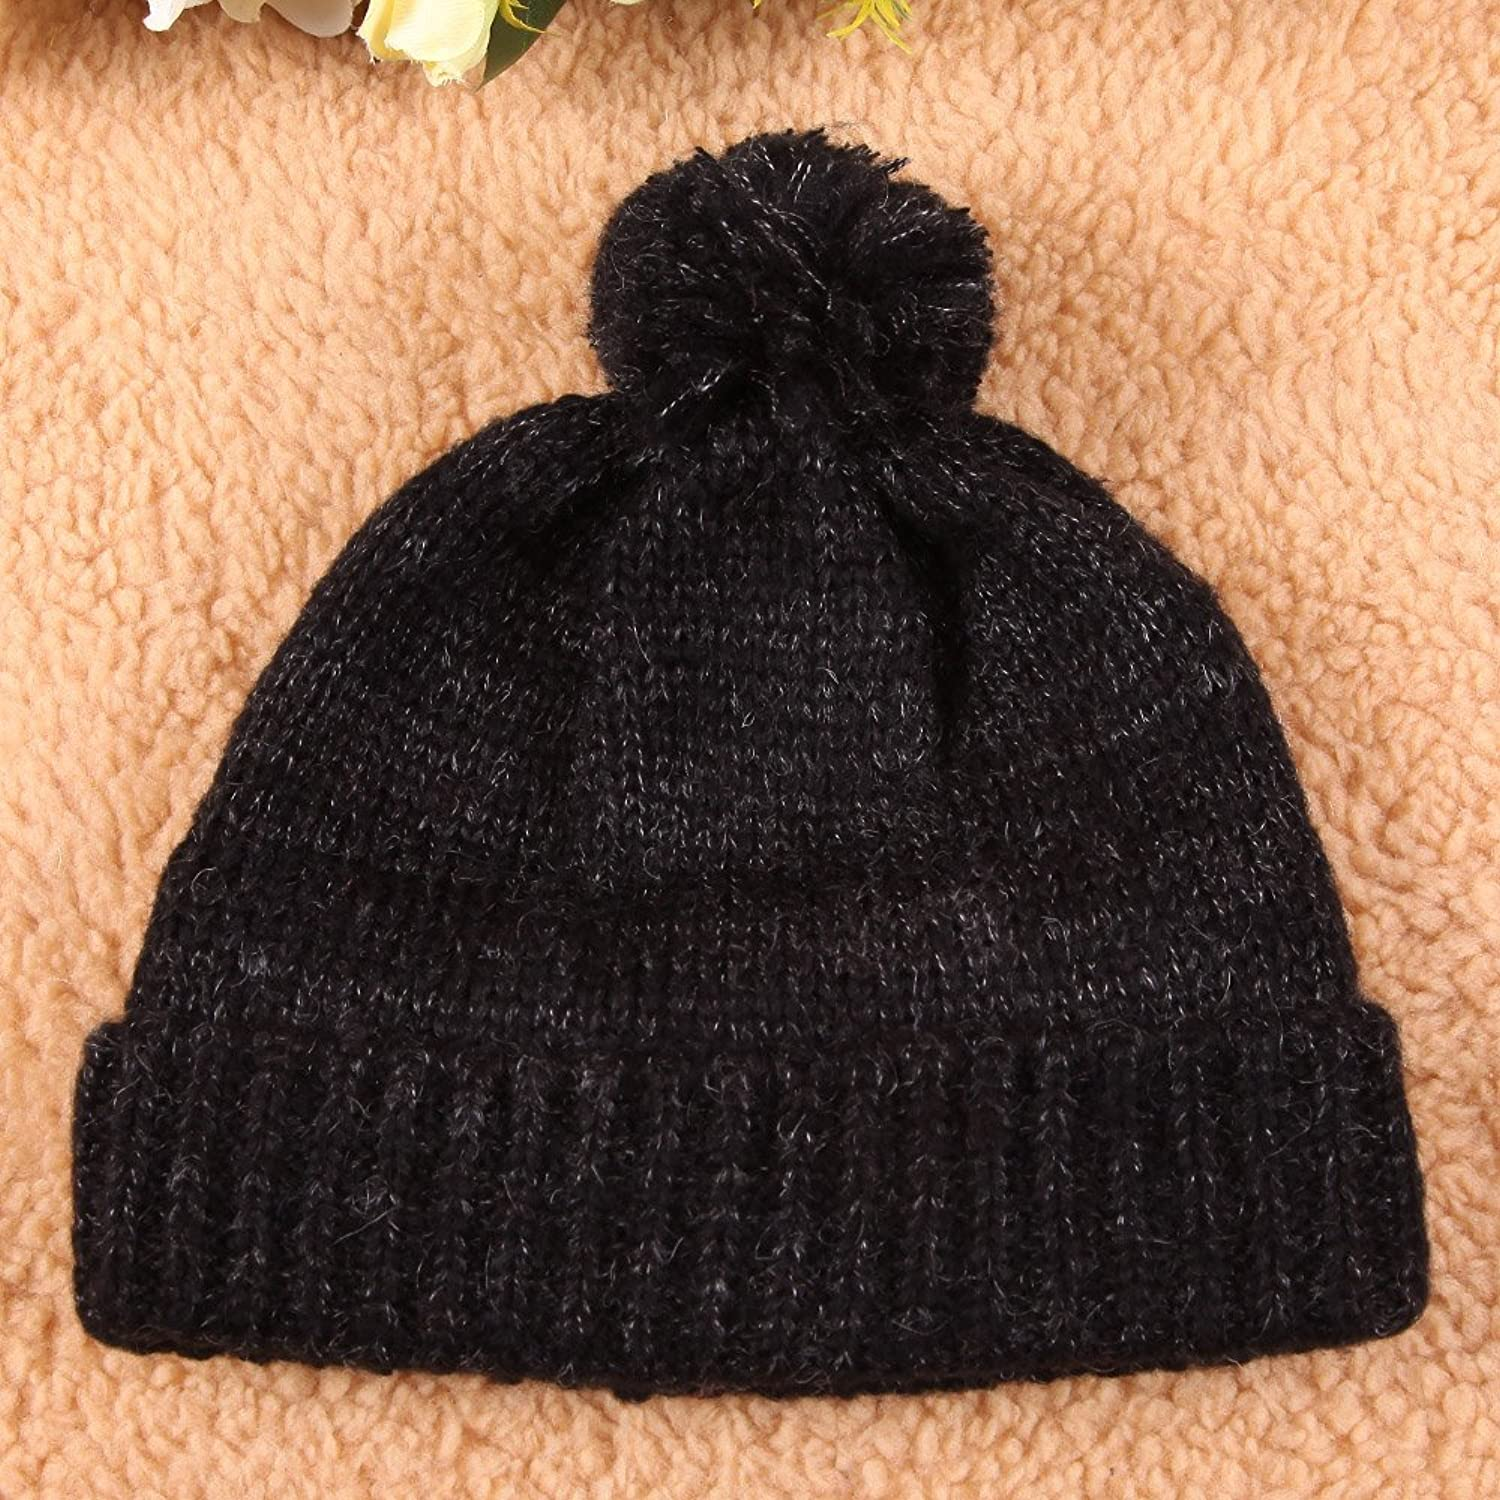 15 Cable Knit Hat Patterns - The Funky Stitch